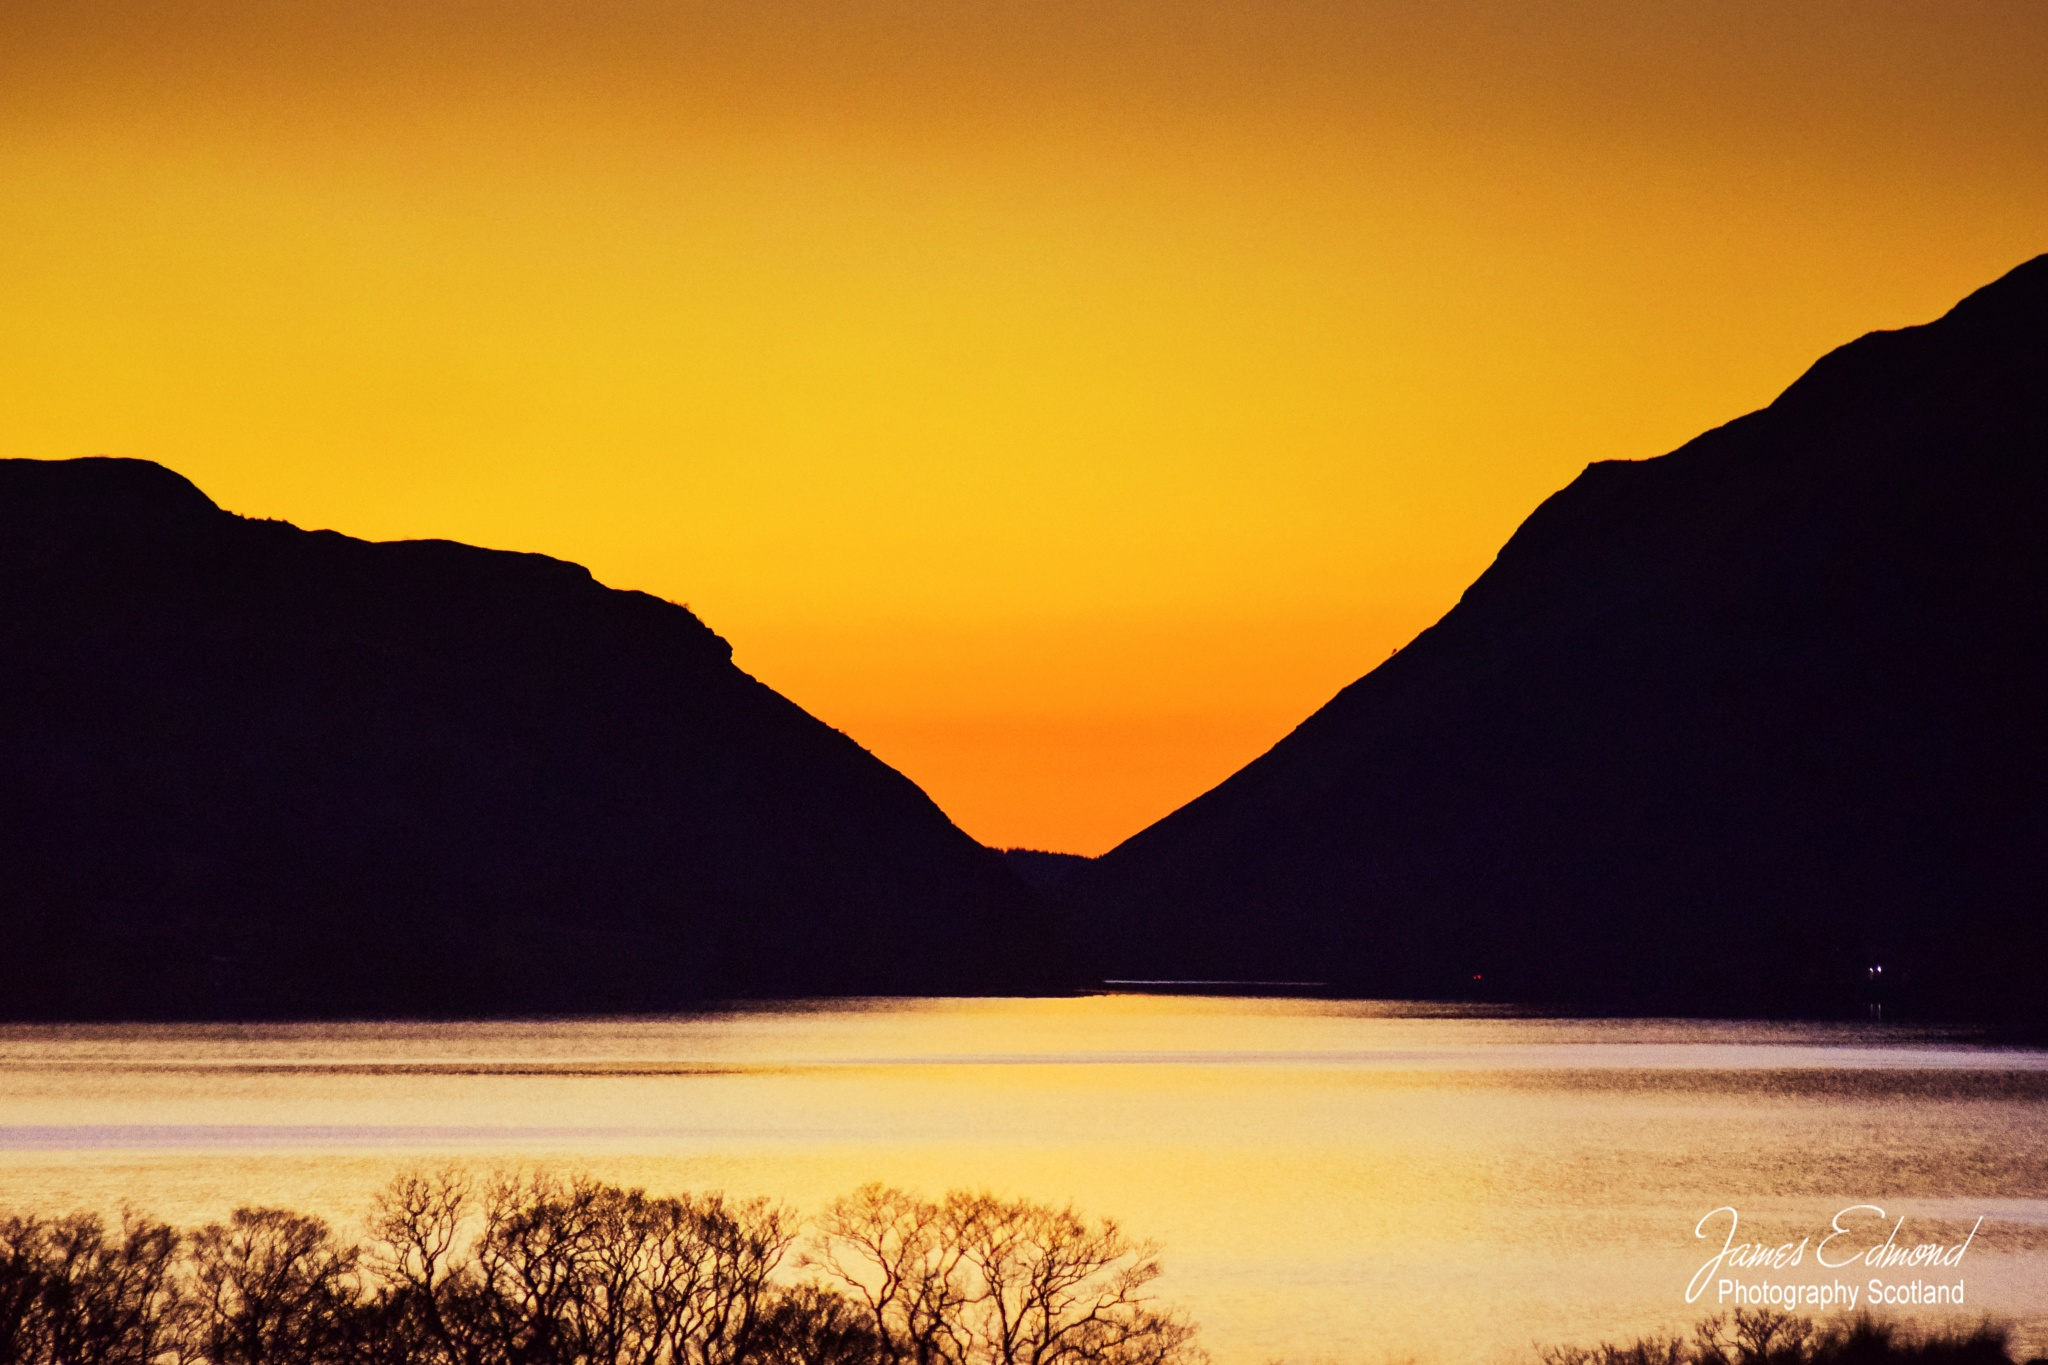 Sunset, Water and Mountains by James Edmond Photography